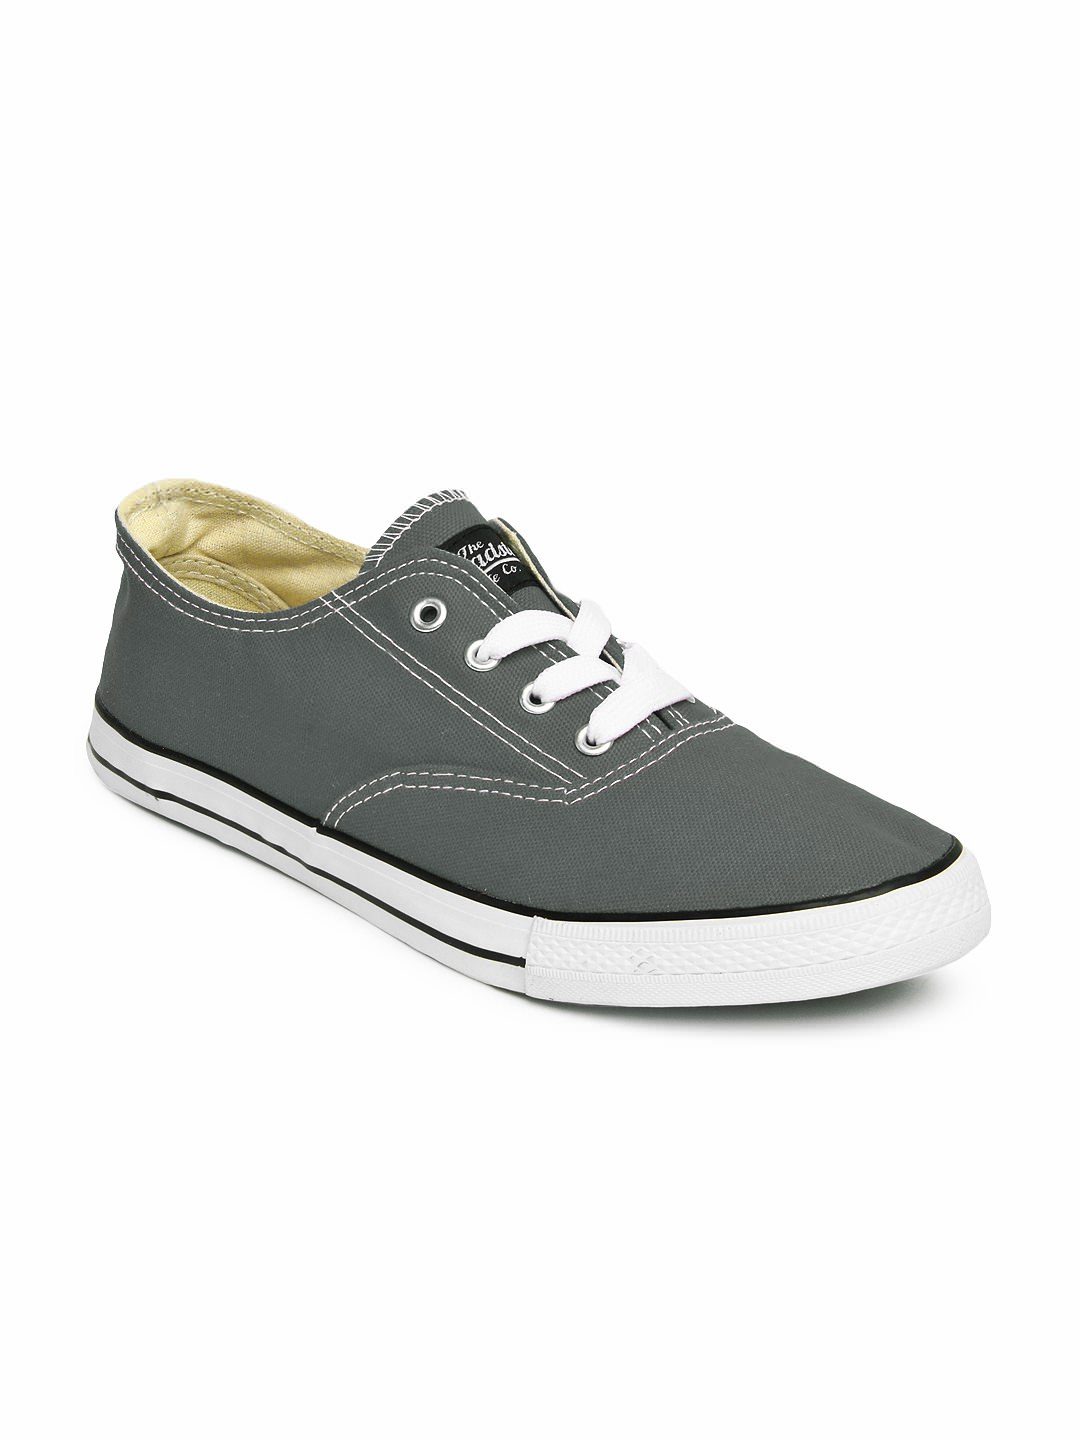 Buy Roadster Casual Shoes at Rs.839